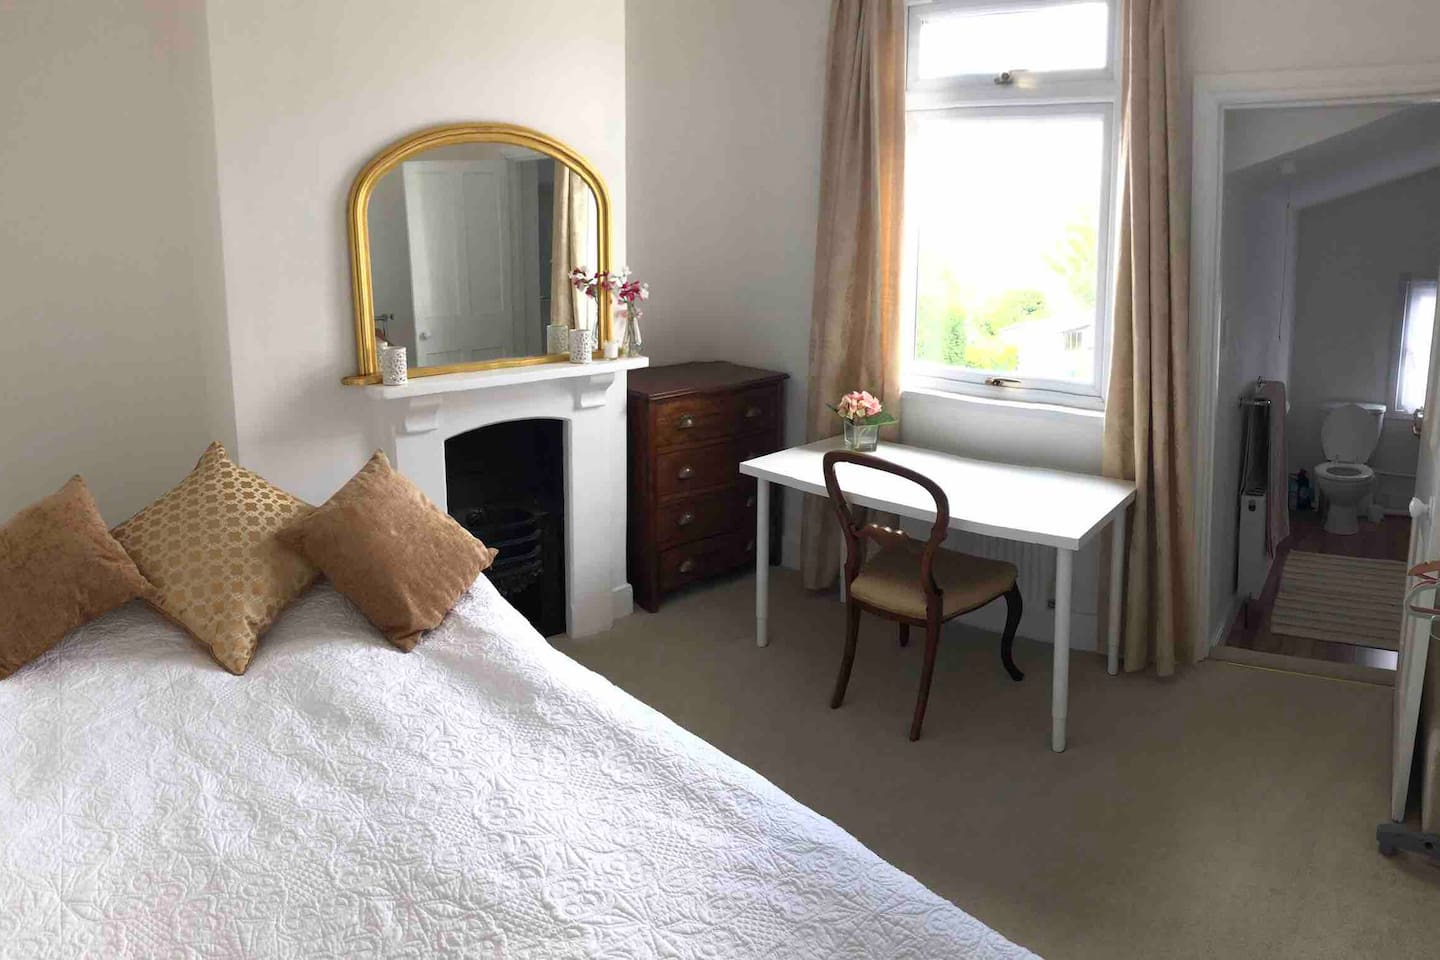 Double bedroom with work desk and view through to the en suite with Bath and shower, sink and WC